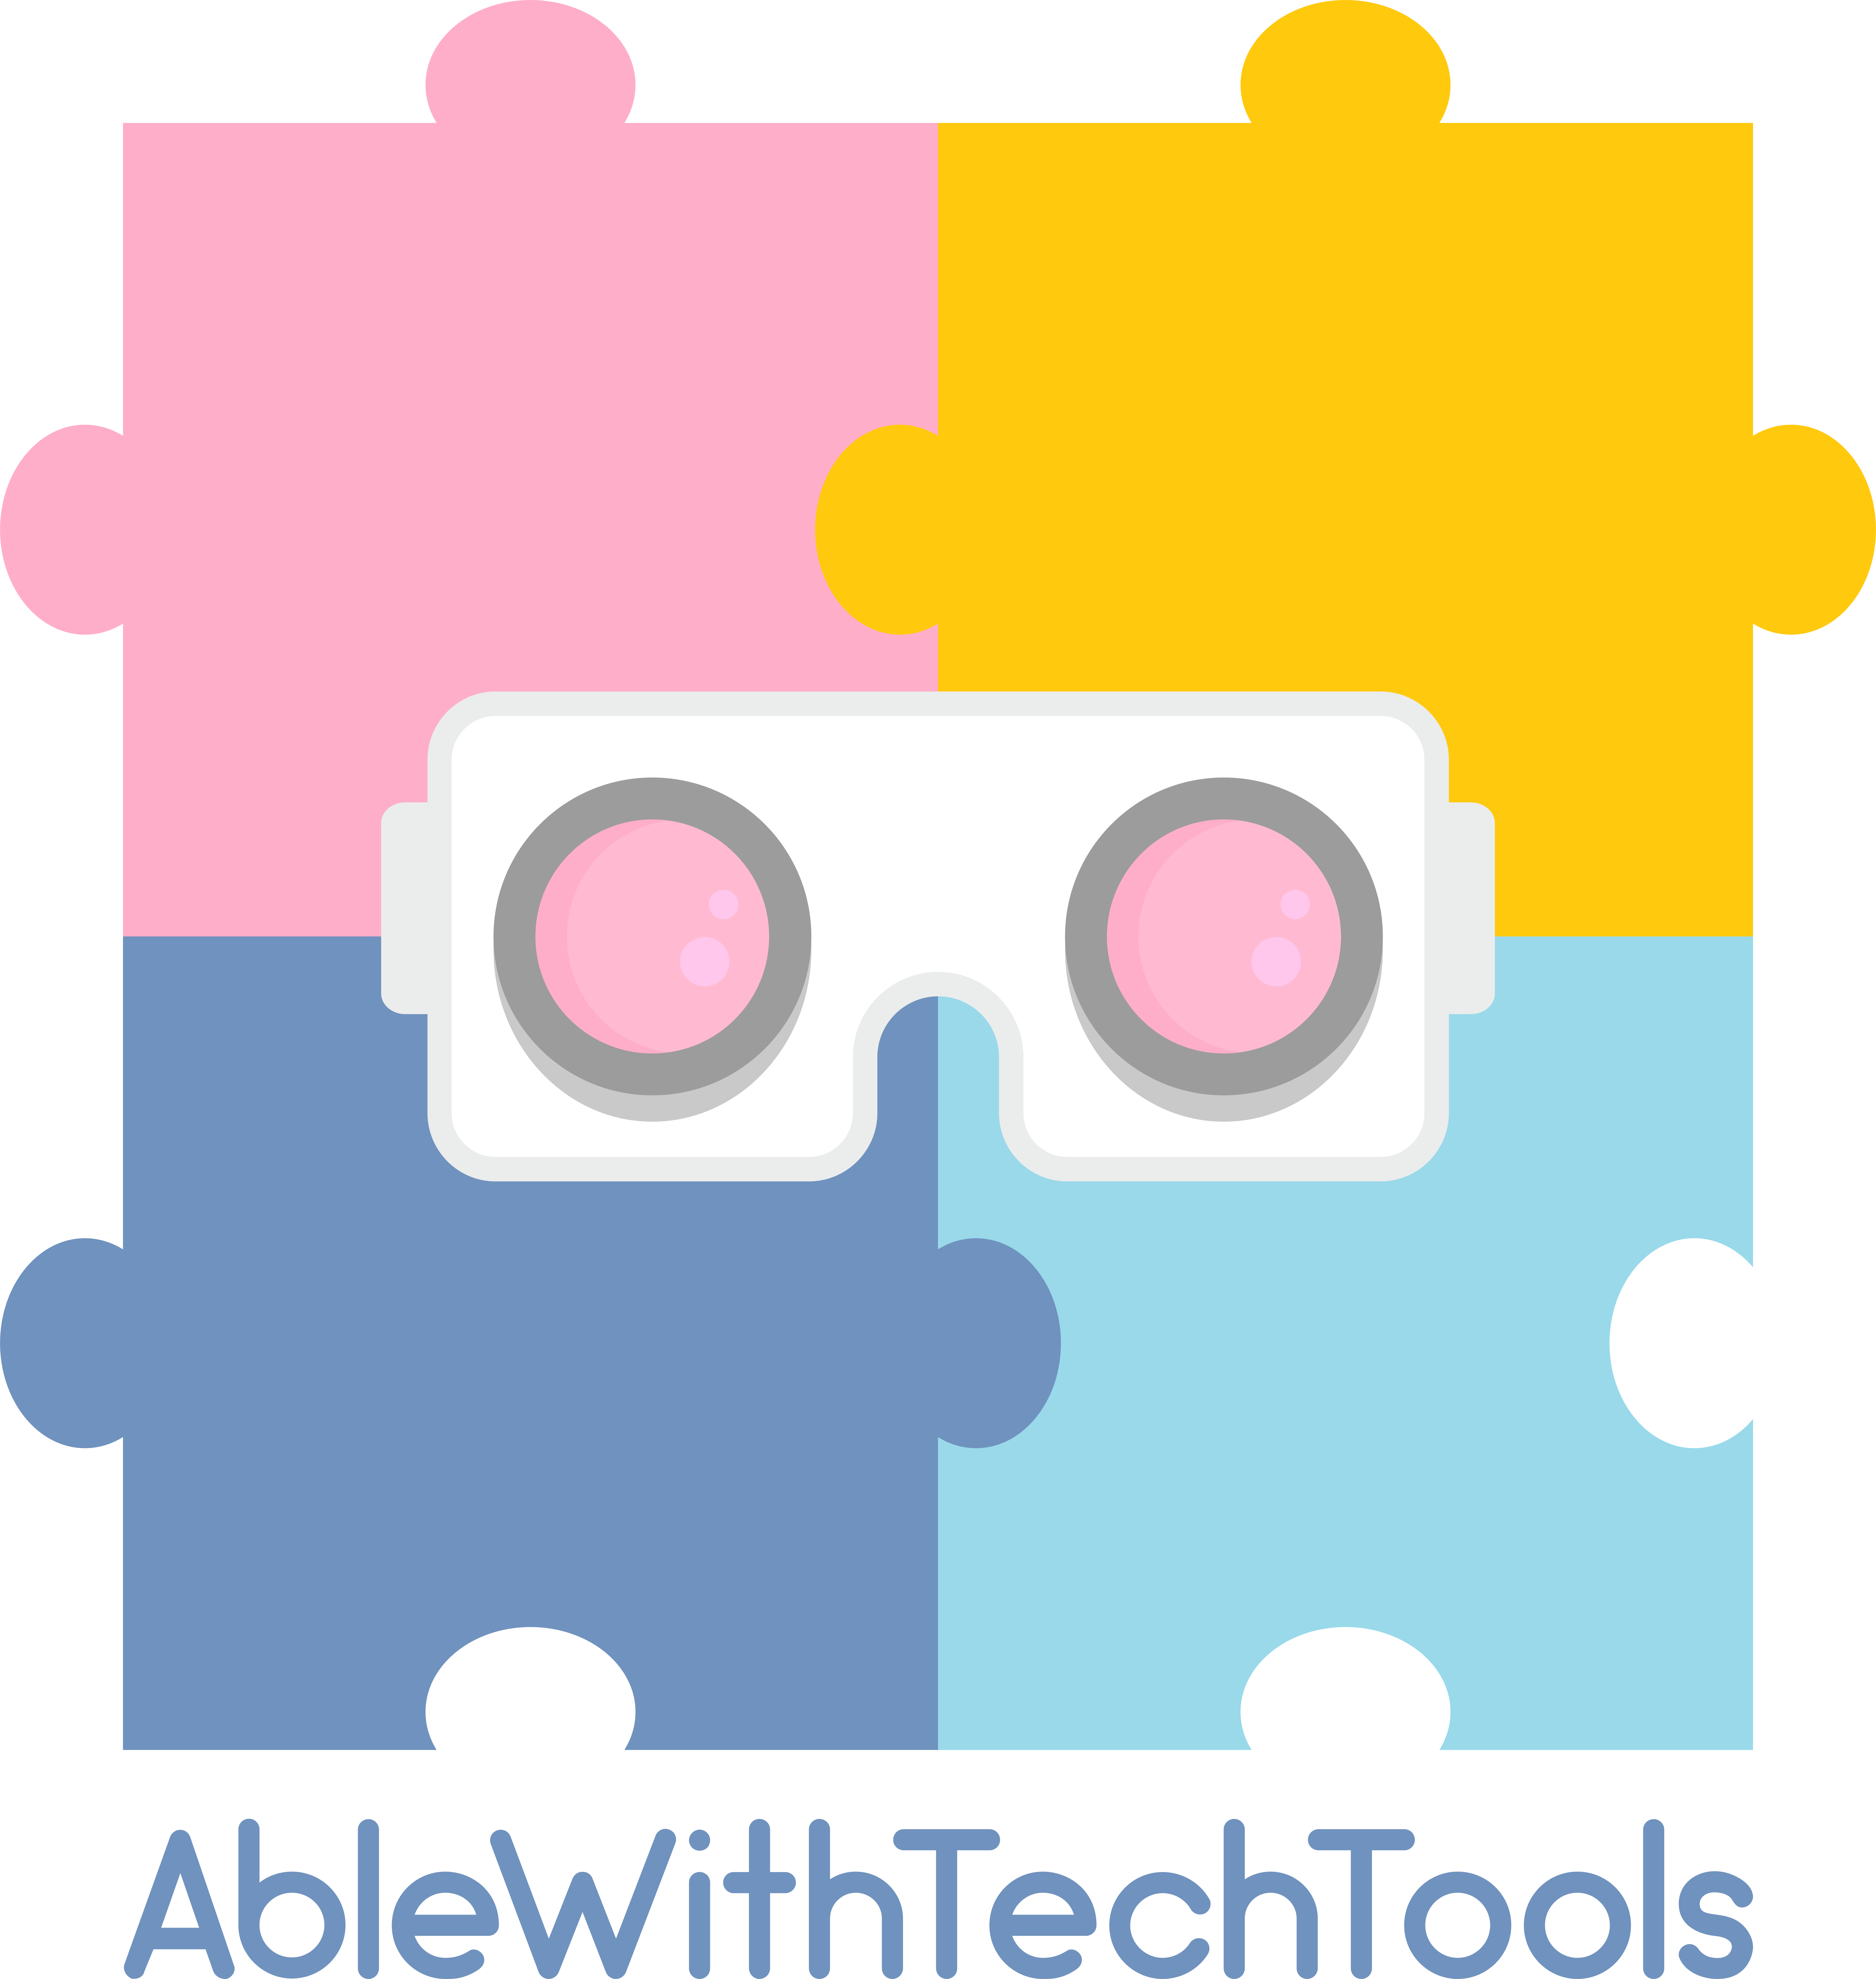 AbleWithTechTools